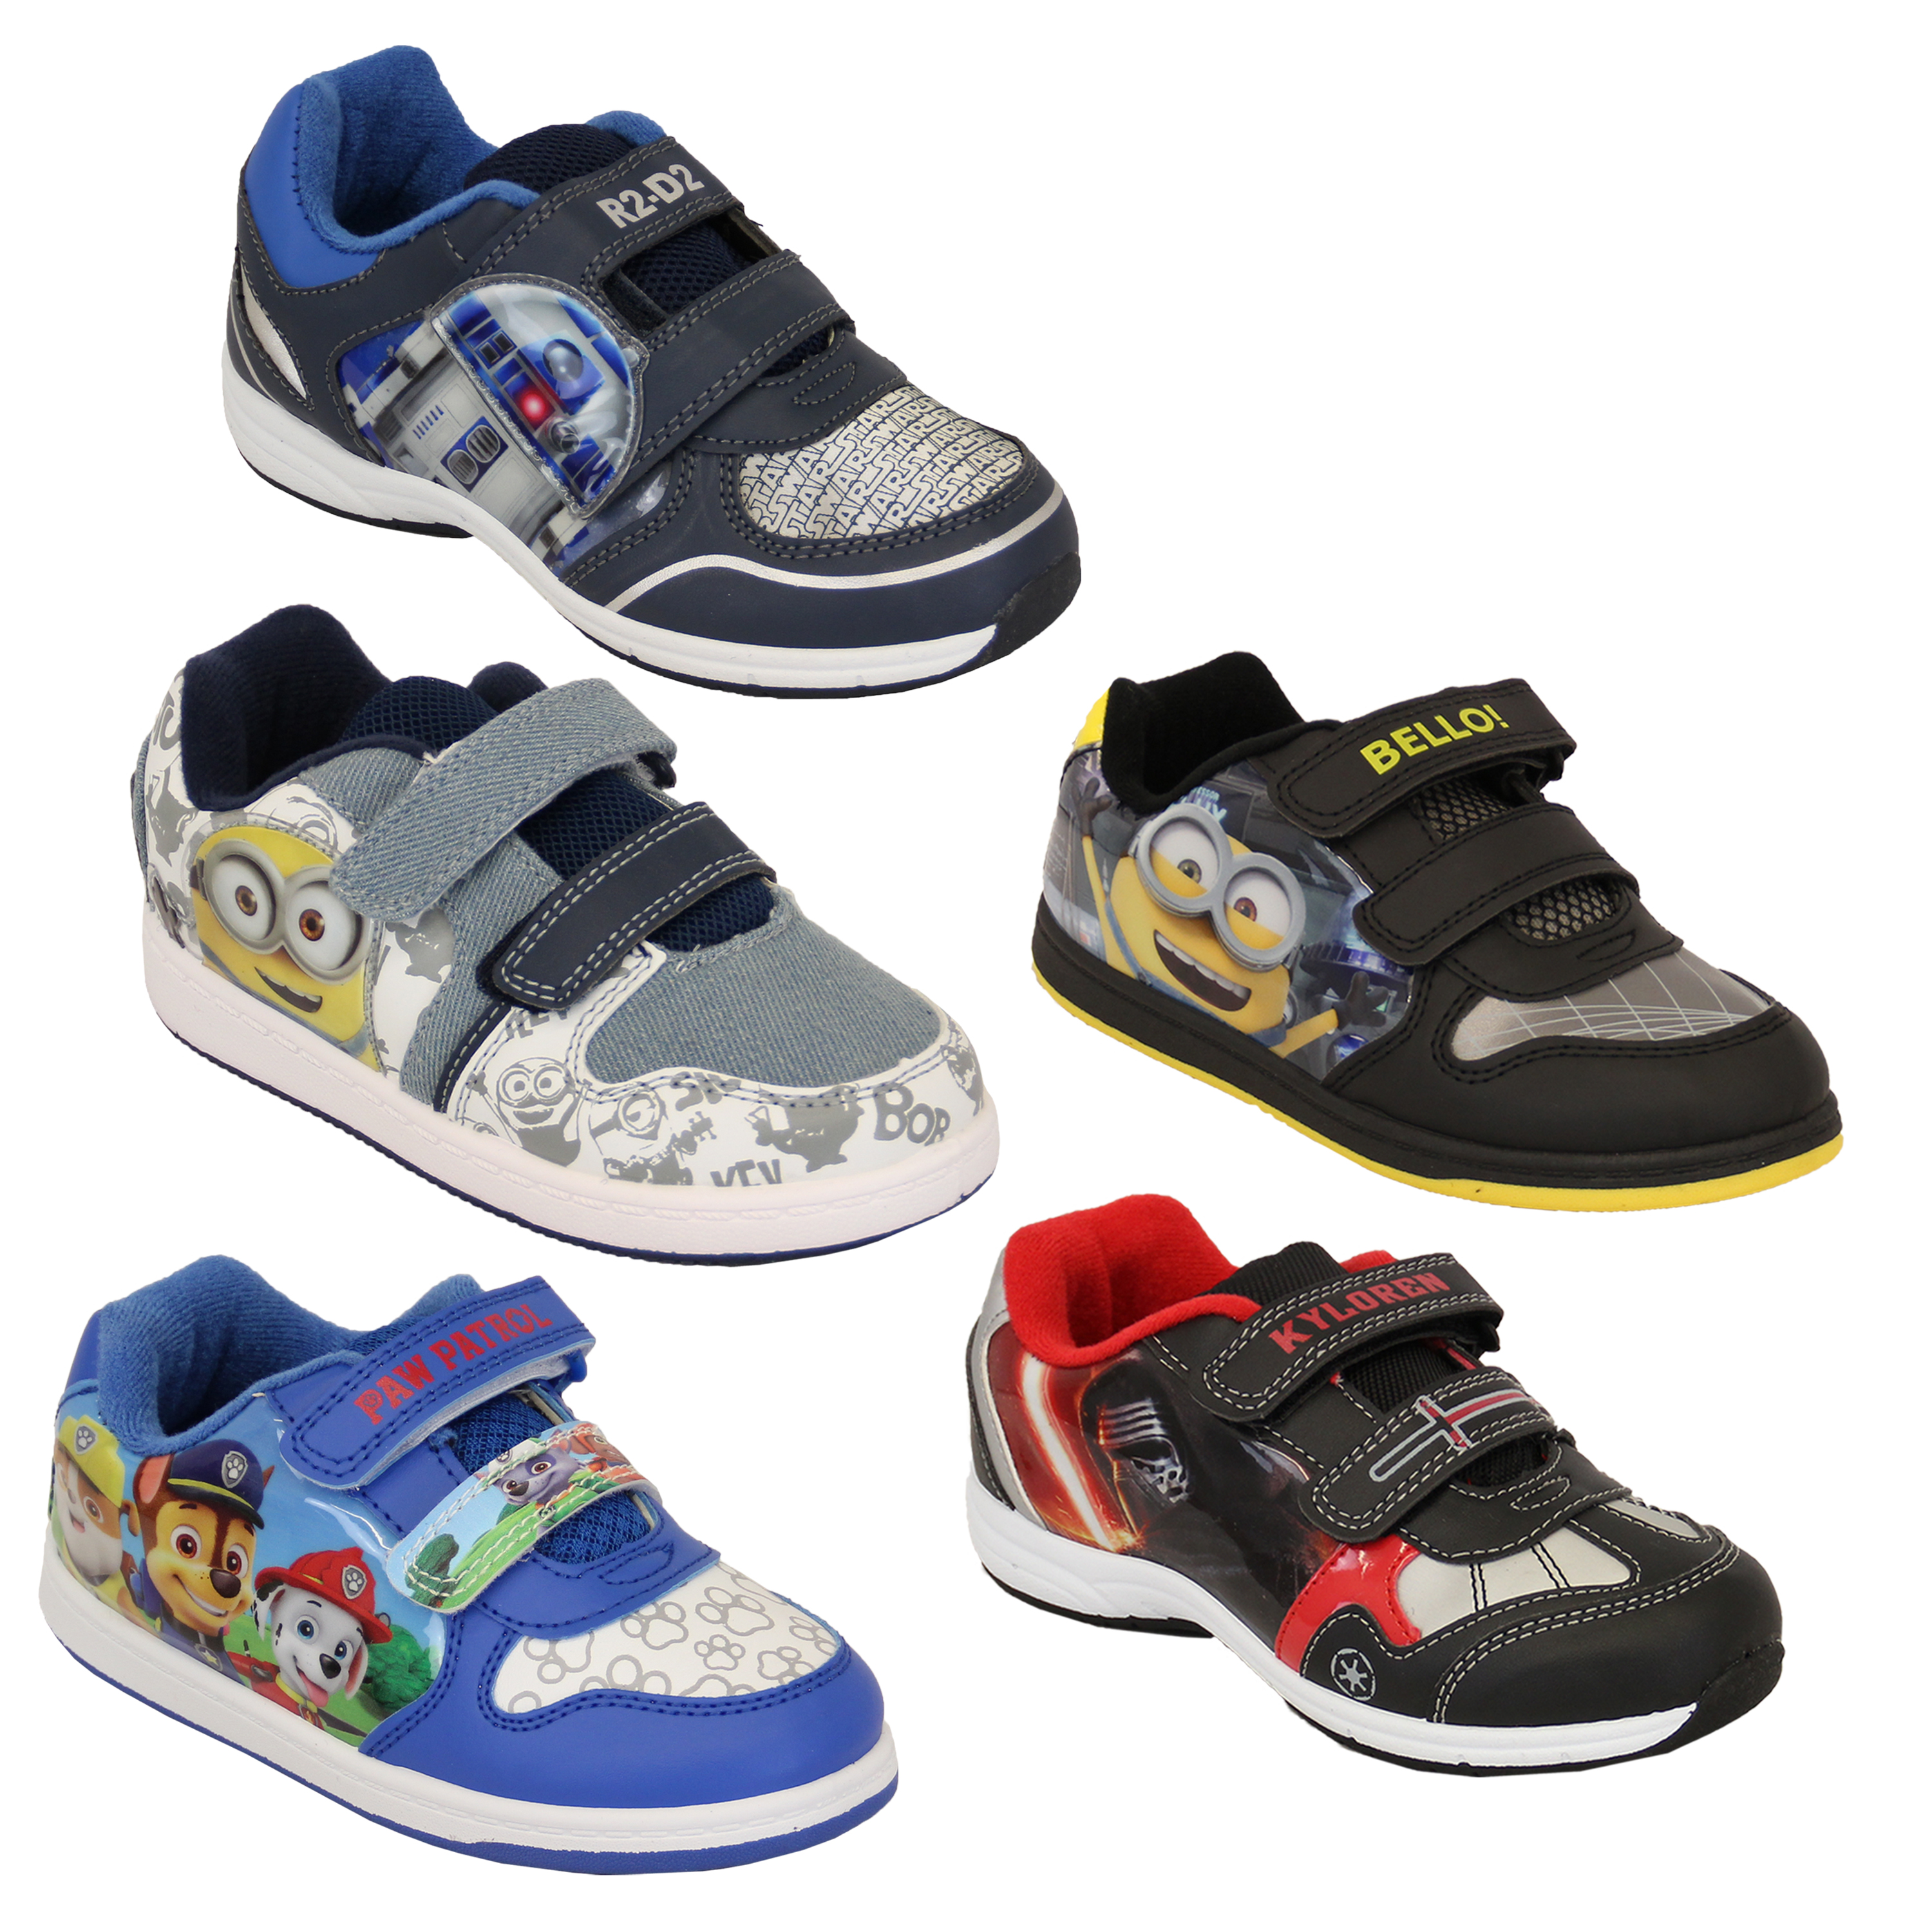 d5eb2d7d46 Boys Trainers Despicable Me Minion Star Wars Disney Shoes Kids Bello ...